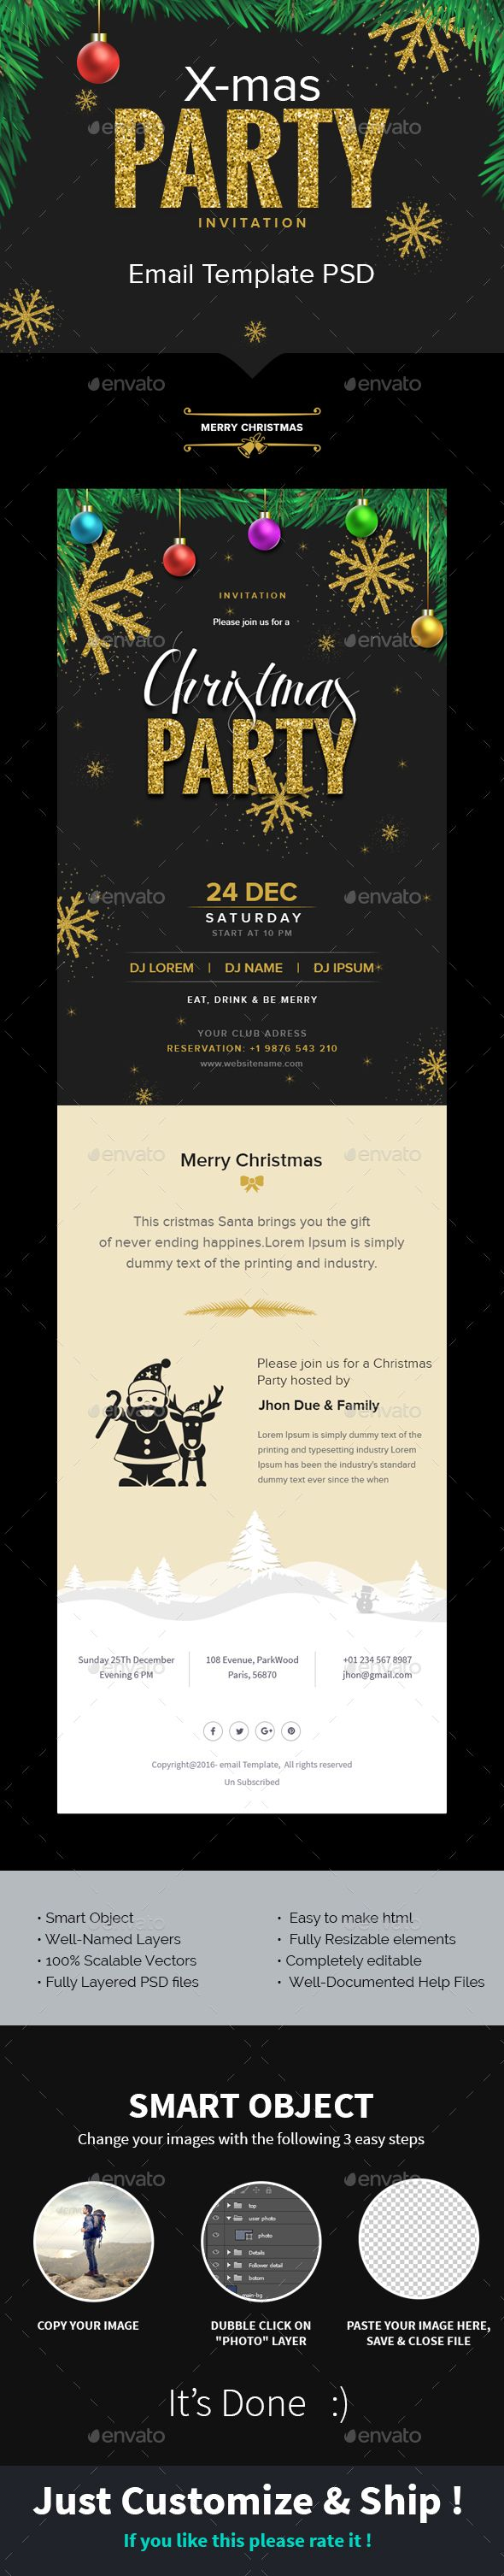 X-mas - Christmas Party Invitation Email Template PSD | Party ...